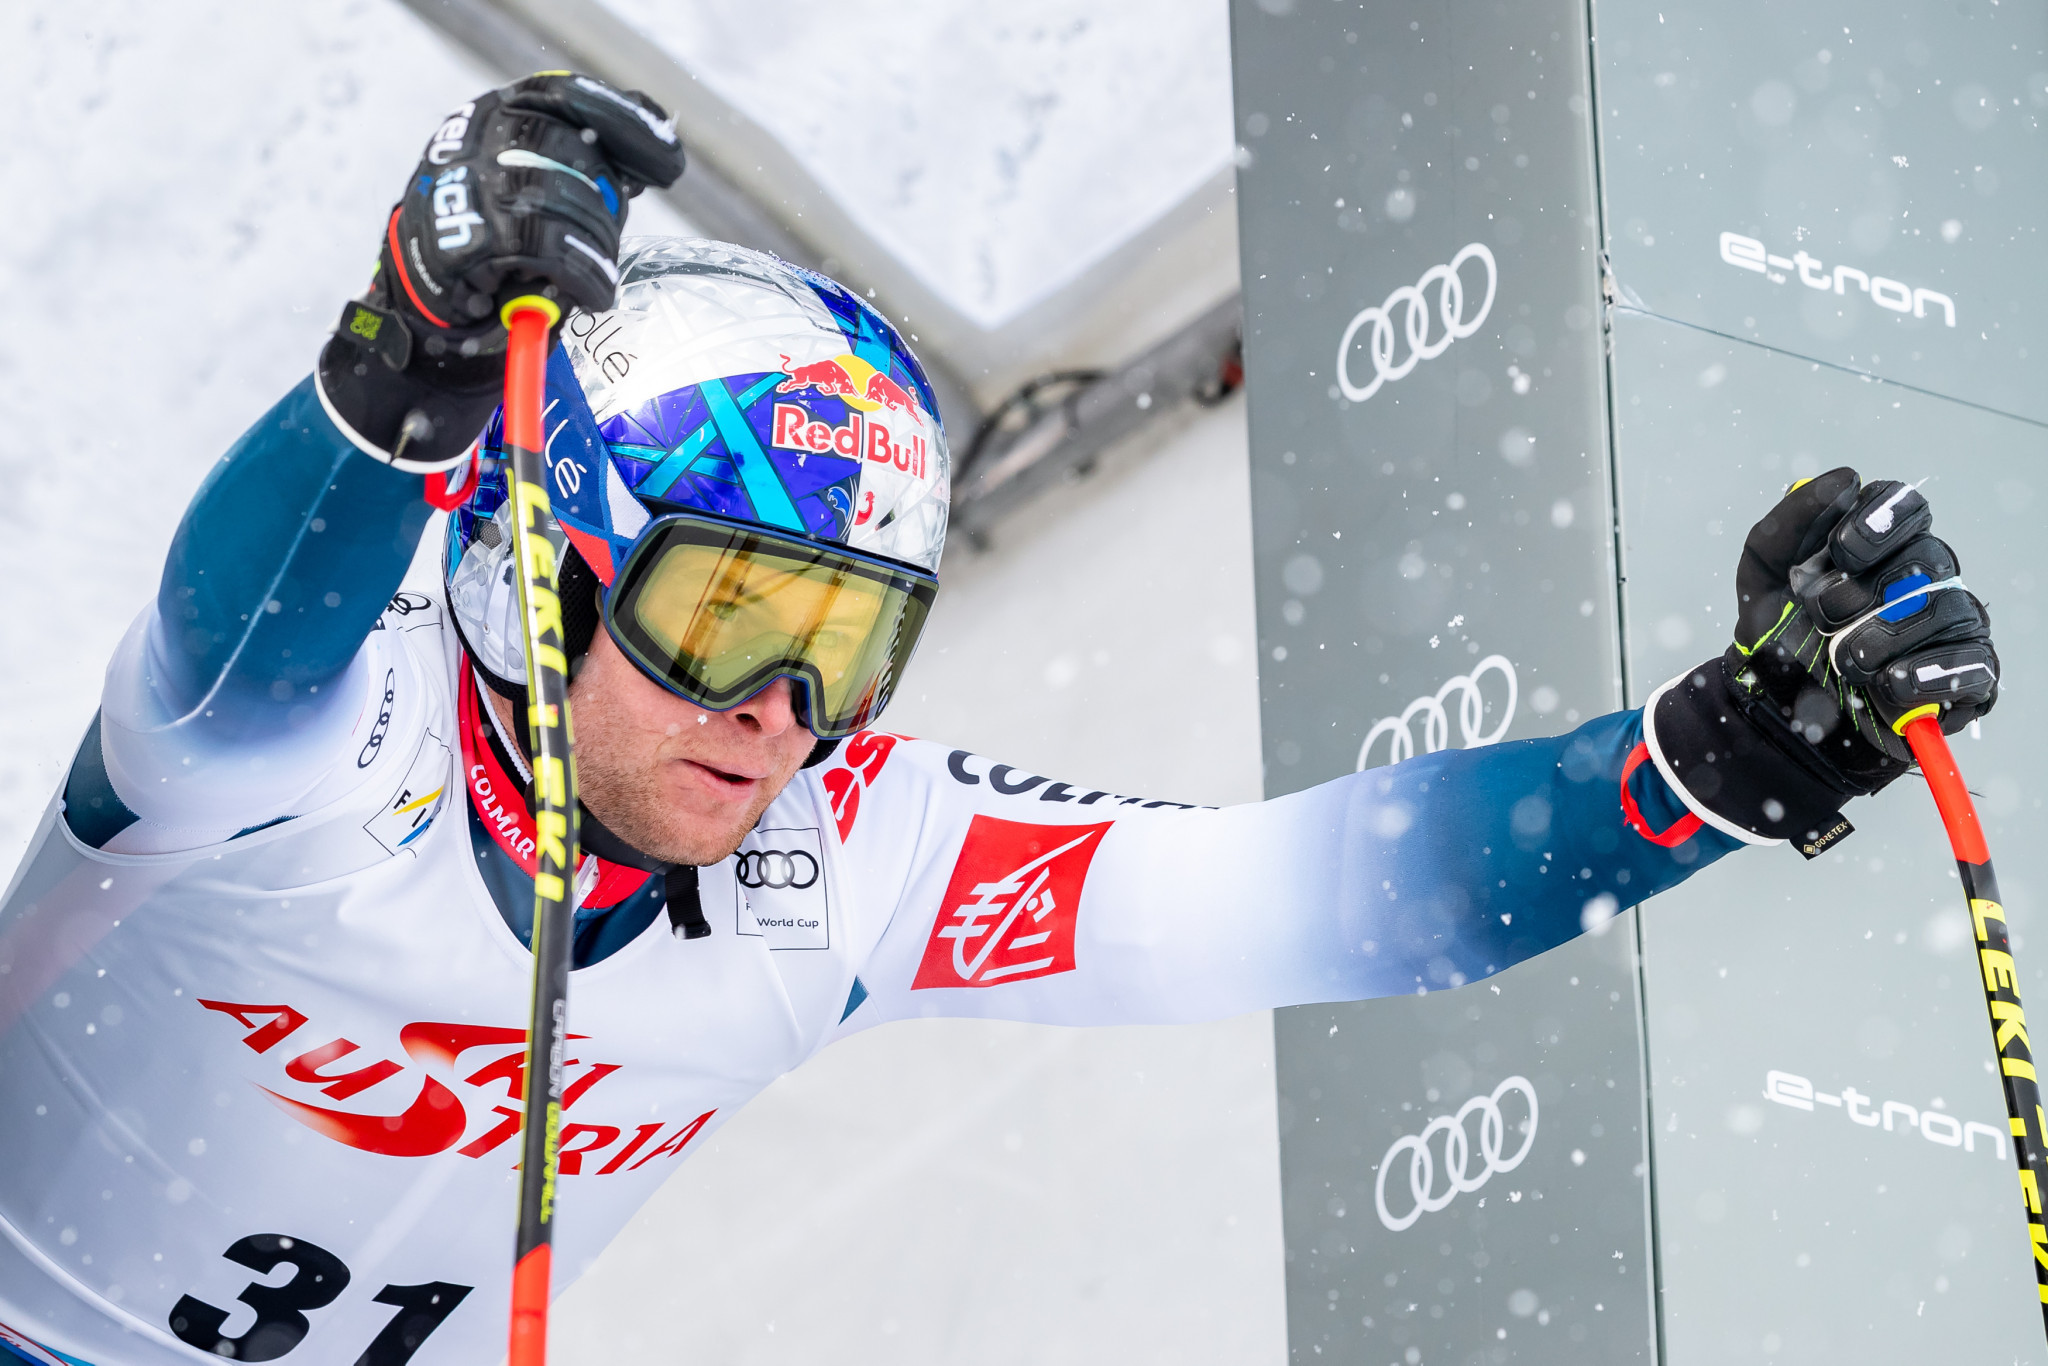 Pinturault poised for sixth overall combined title at Alpine Skiing World Cup in Hinterstoder